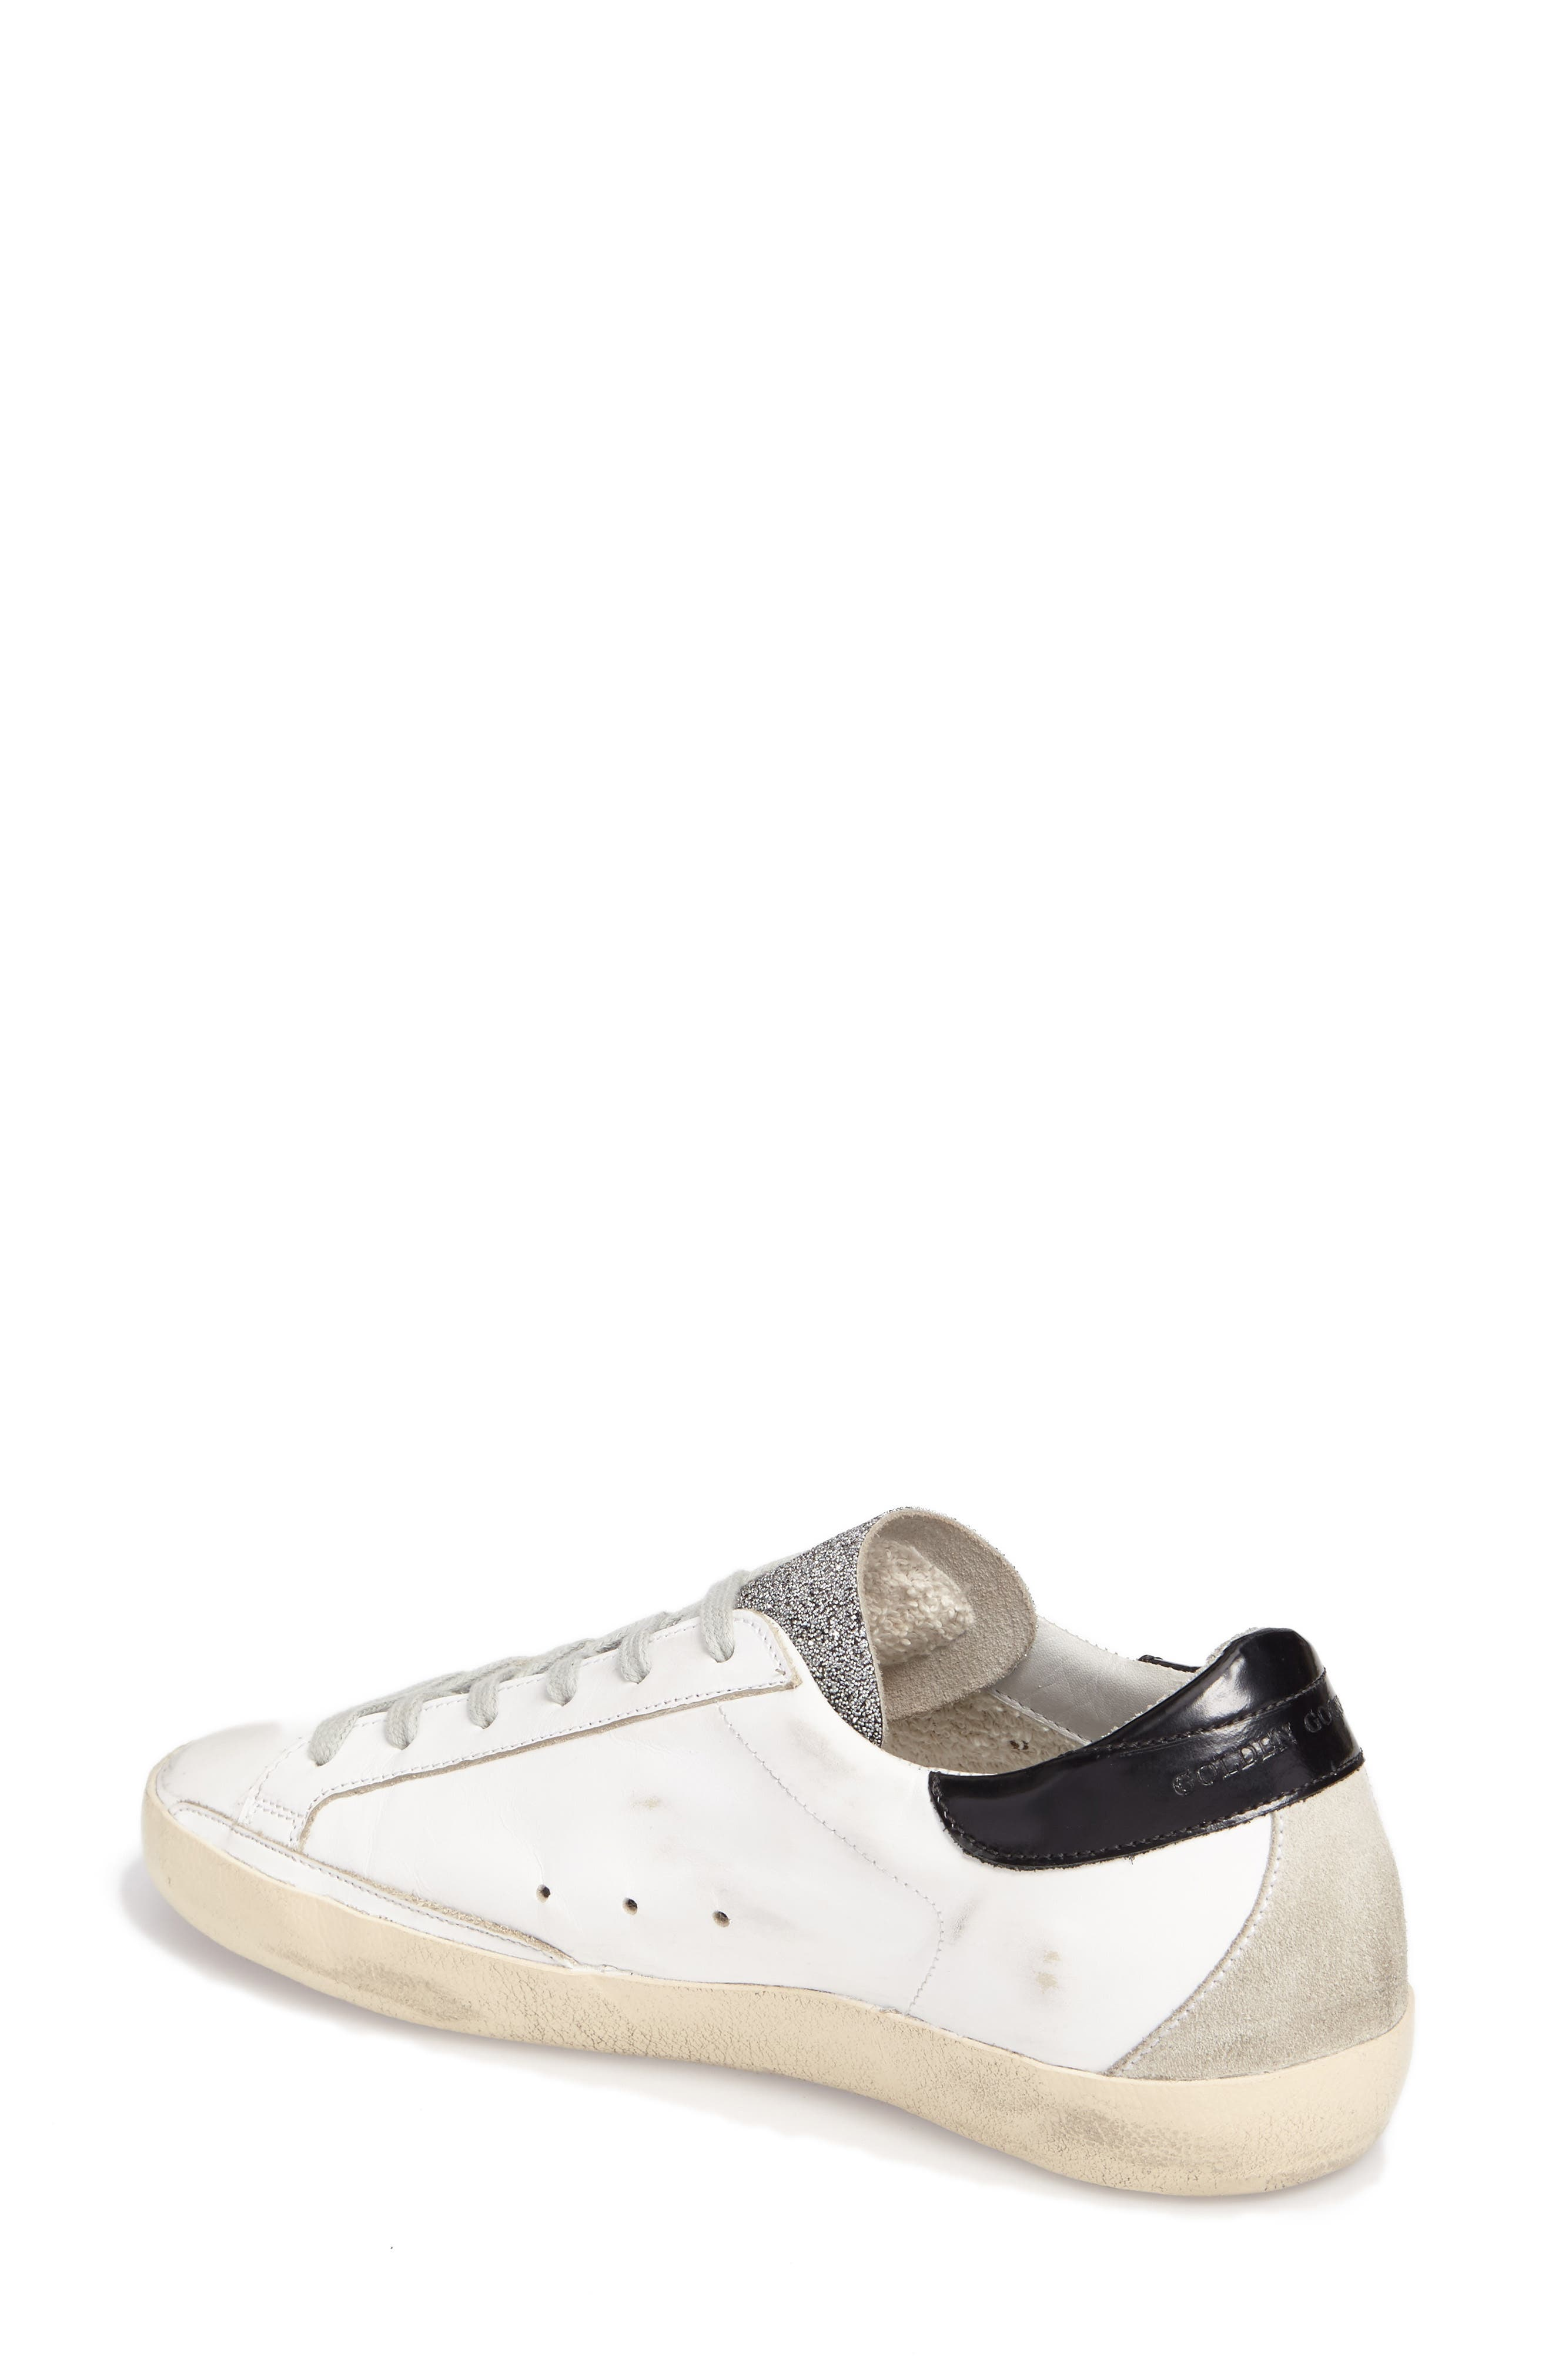 Superstar Low Top Sneaker,                             Alternate thumbnail 2, color,                             White